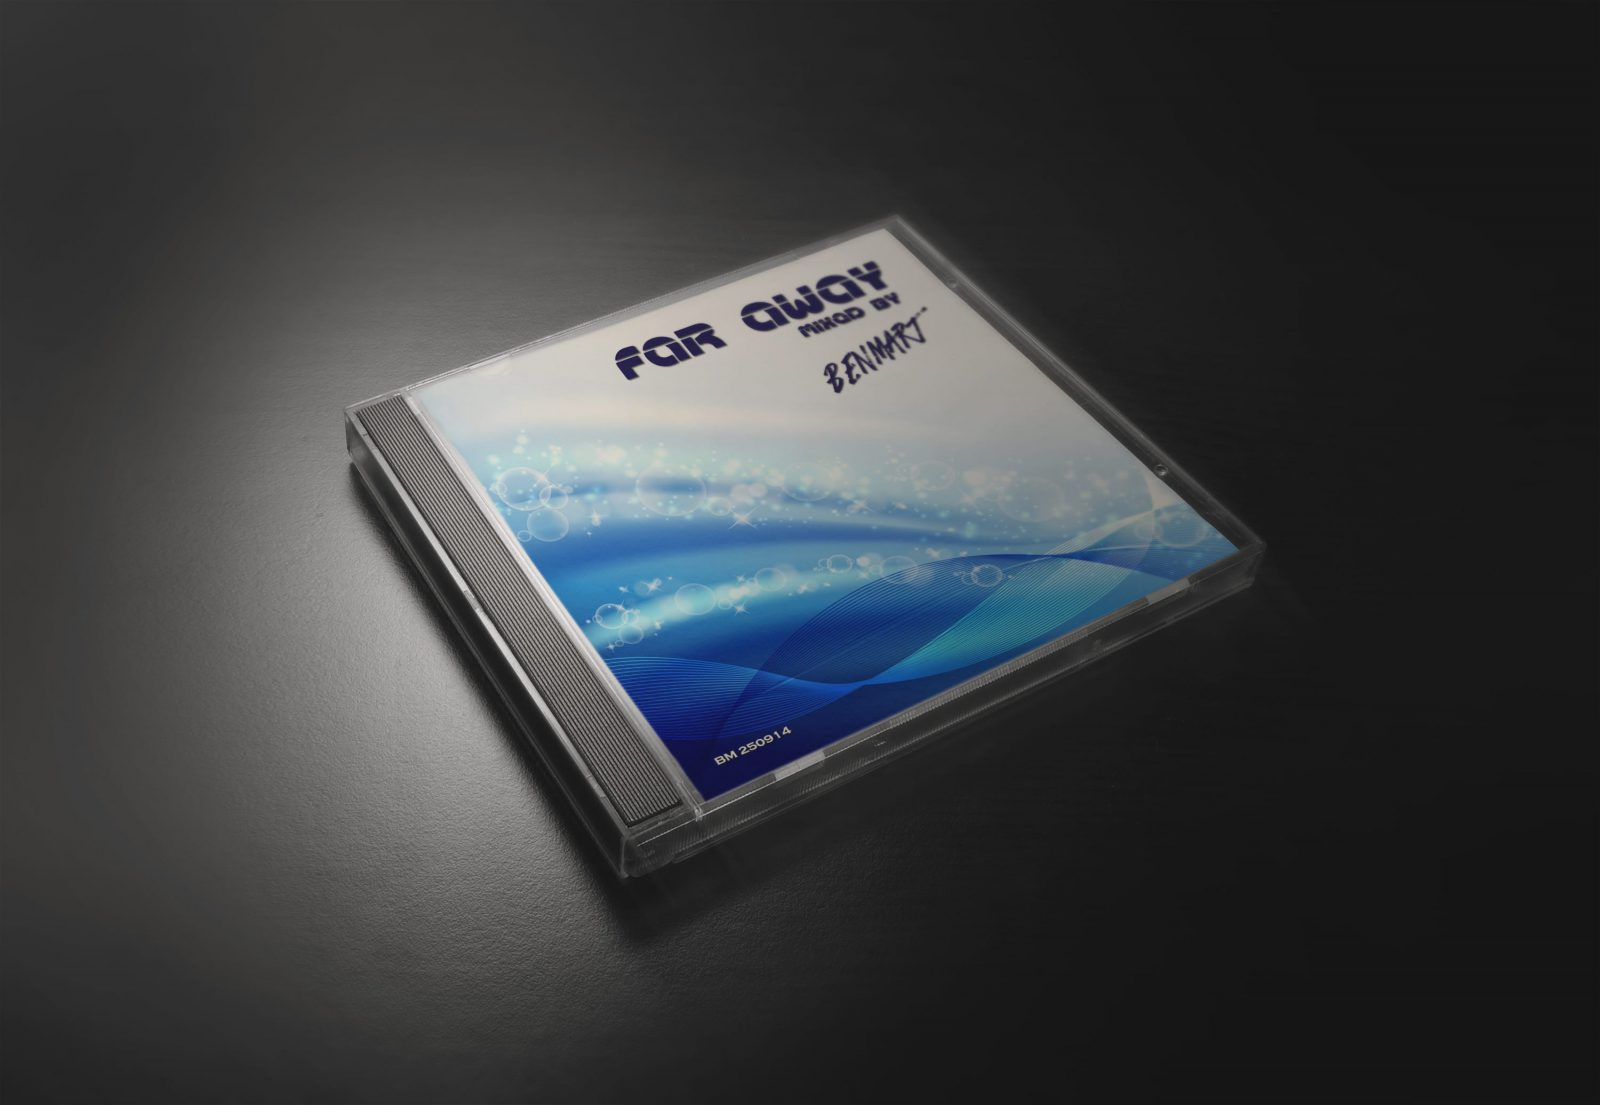 Far Away Single CD. Electrónica, Techno, House